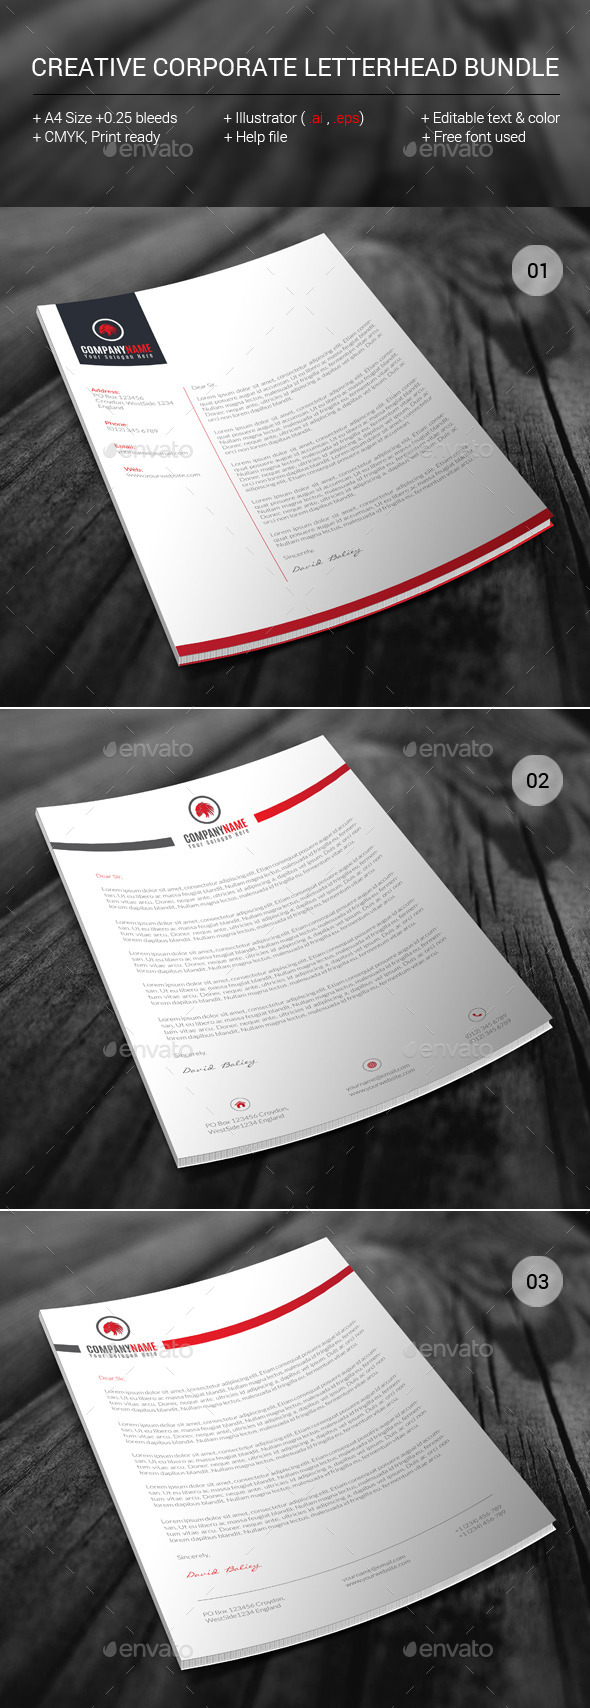 GraphicRiver Creative Corporate Letterhead Bundle 11453142